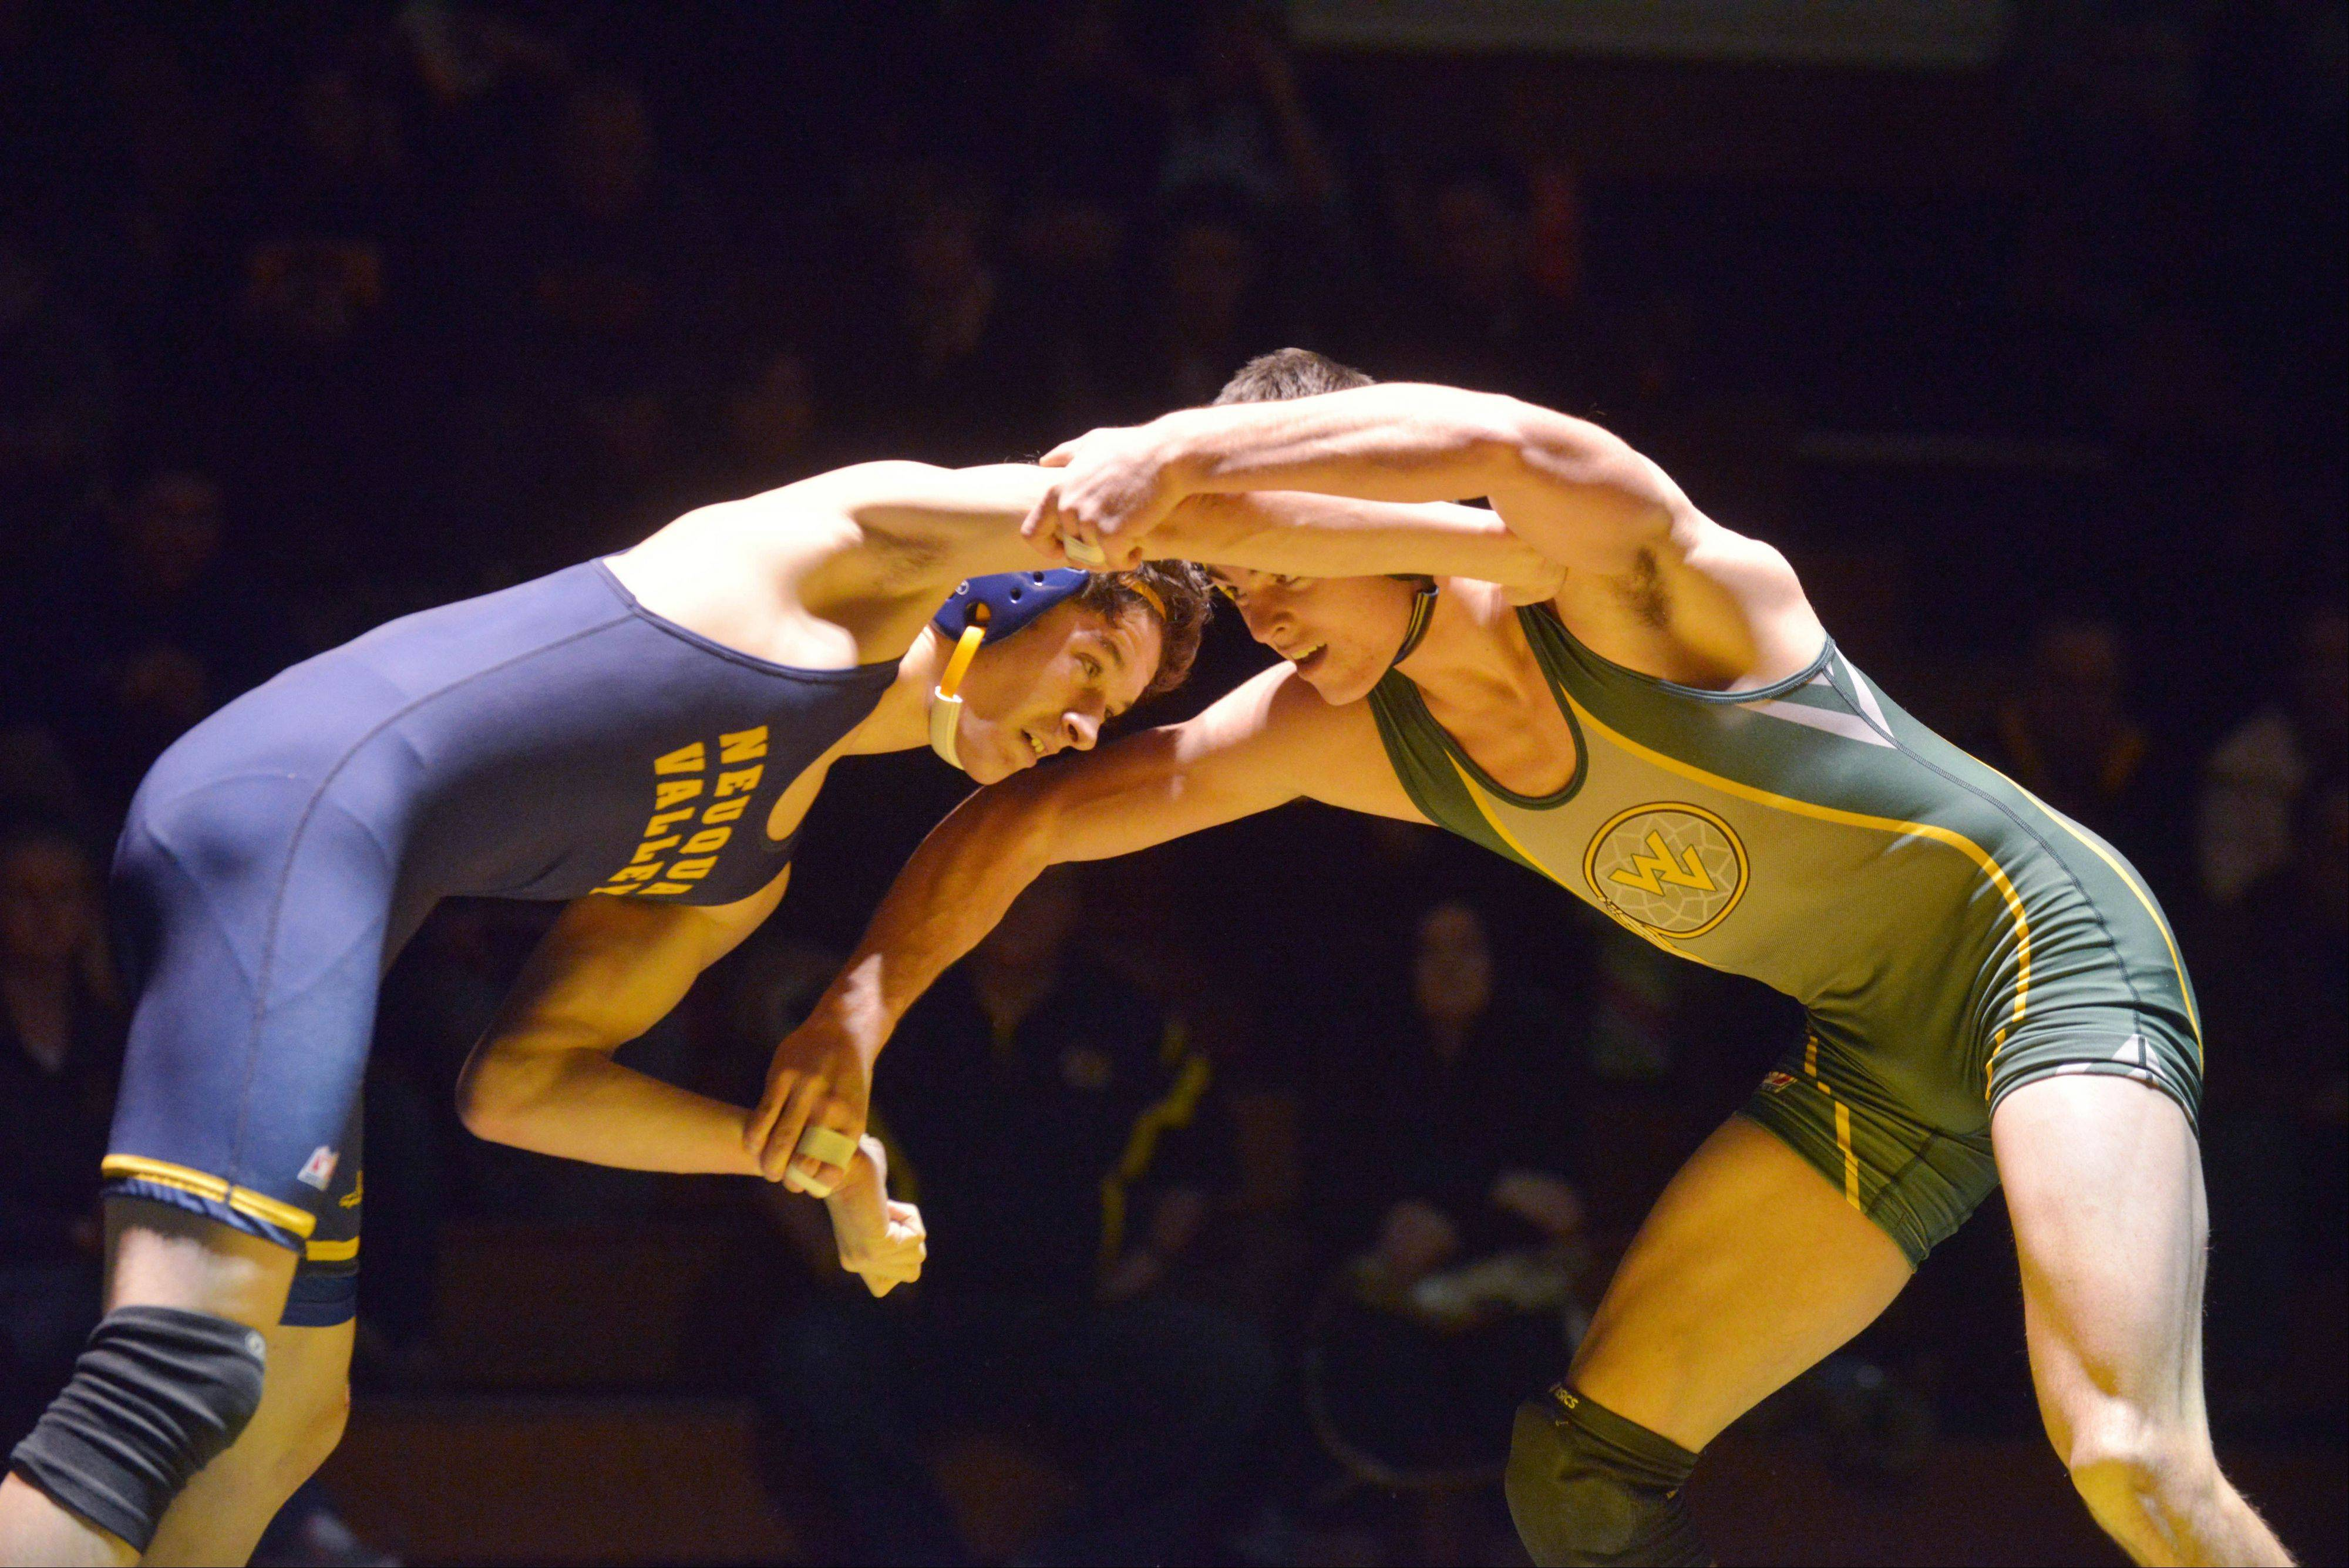 Paul Michna/pmichna@dailyherald.comJackson Modaff of Neuqua and Jimmy Davis of Waubonsie Valley take part in the 138 pound match during the Neuqua Valley at Waubonsie Valley wrestling meet Friday.